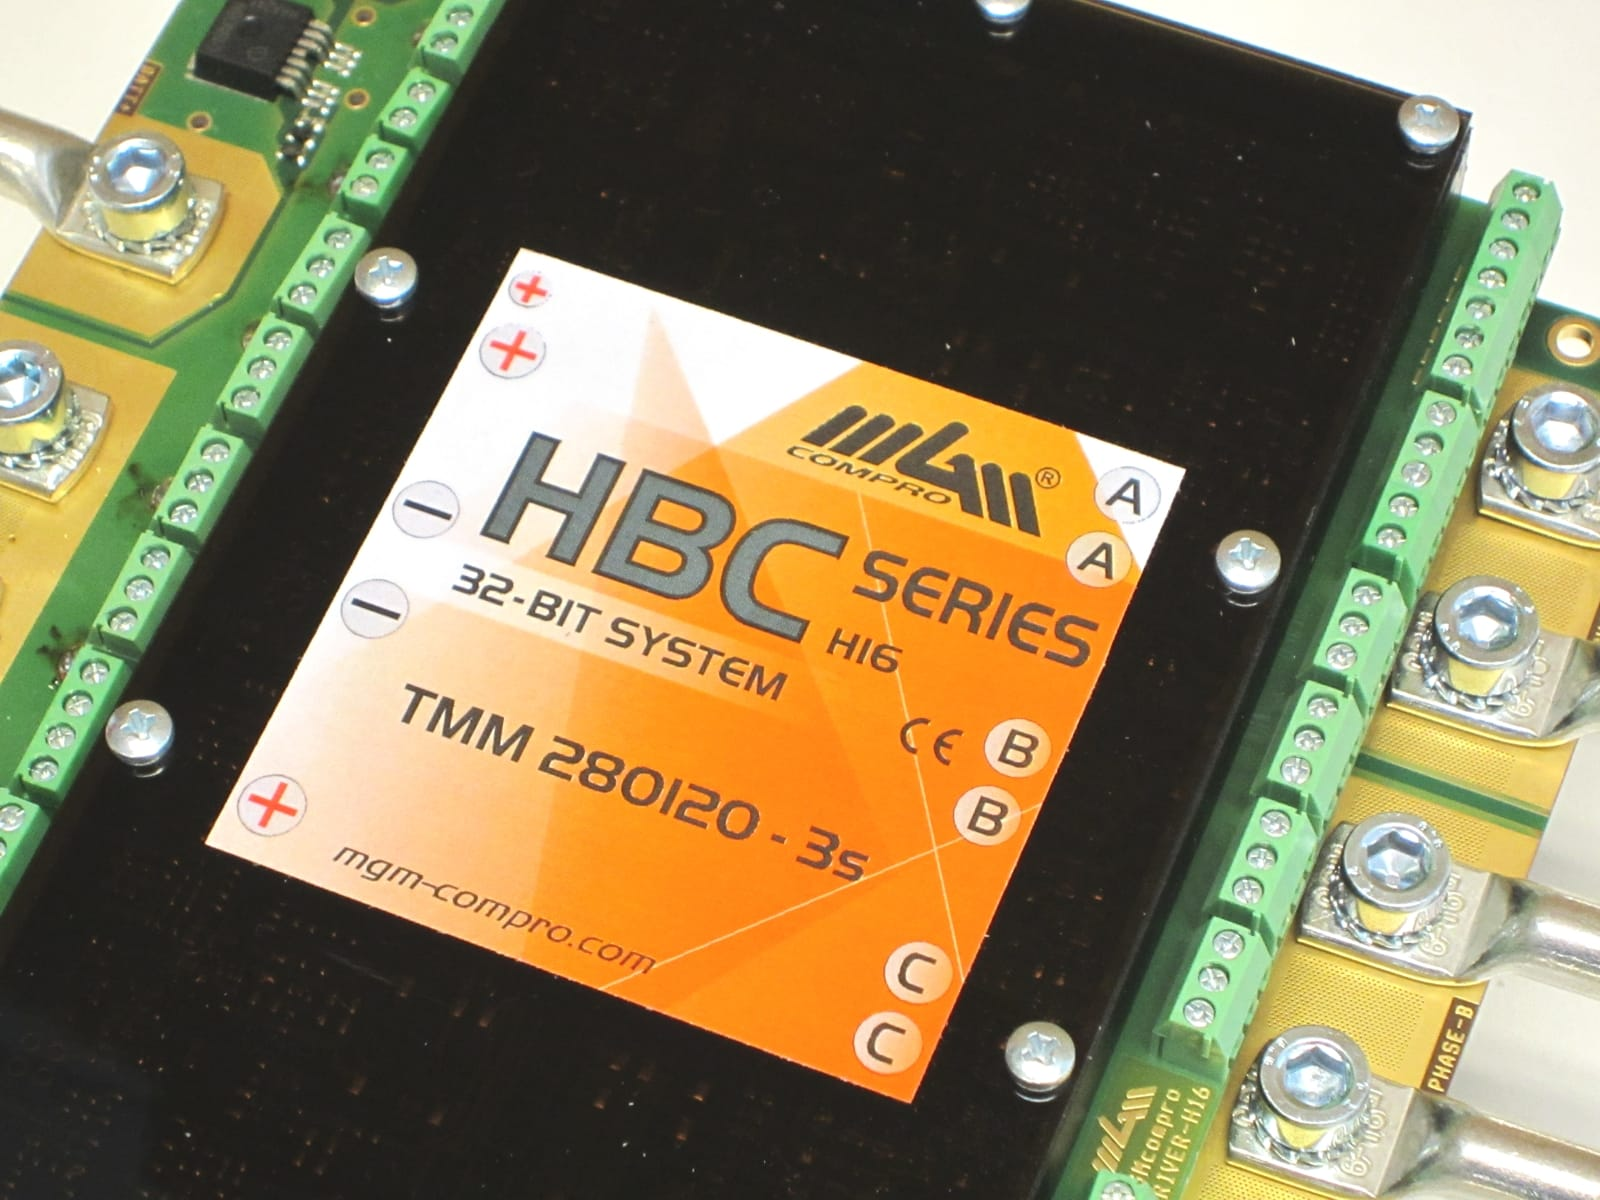 762-industrial-speed-controller-hbc-series-280a-120v-33kw